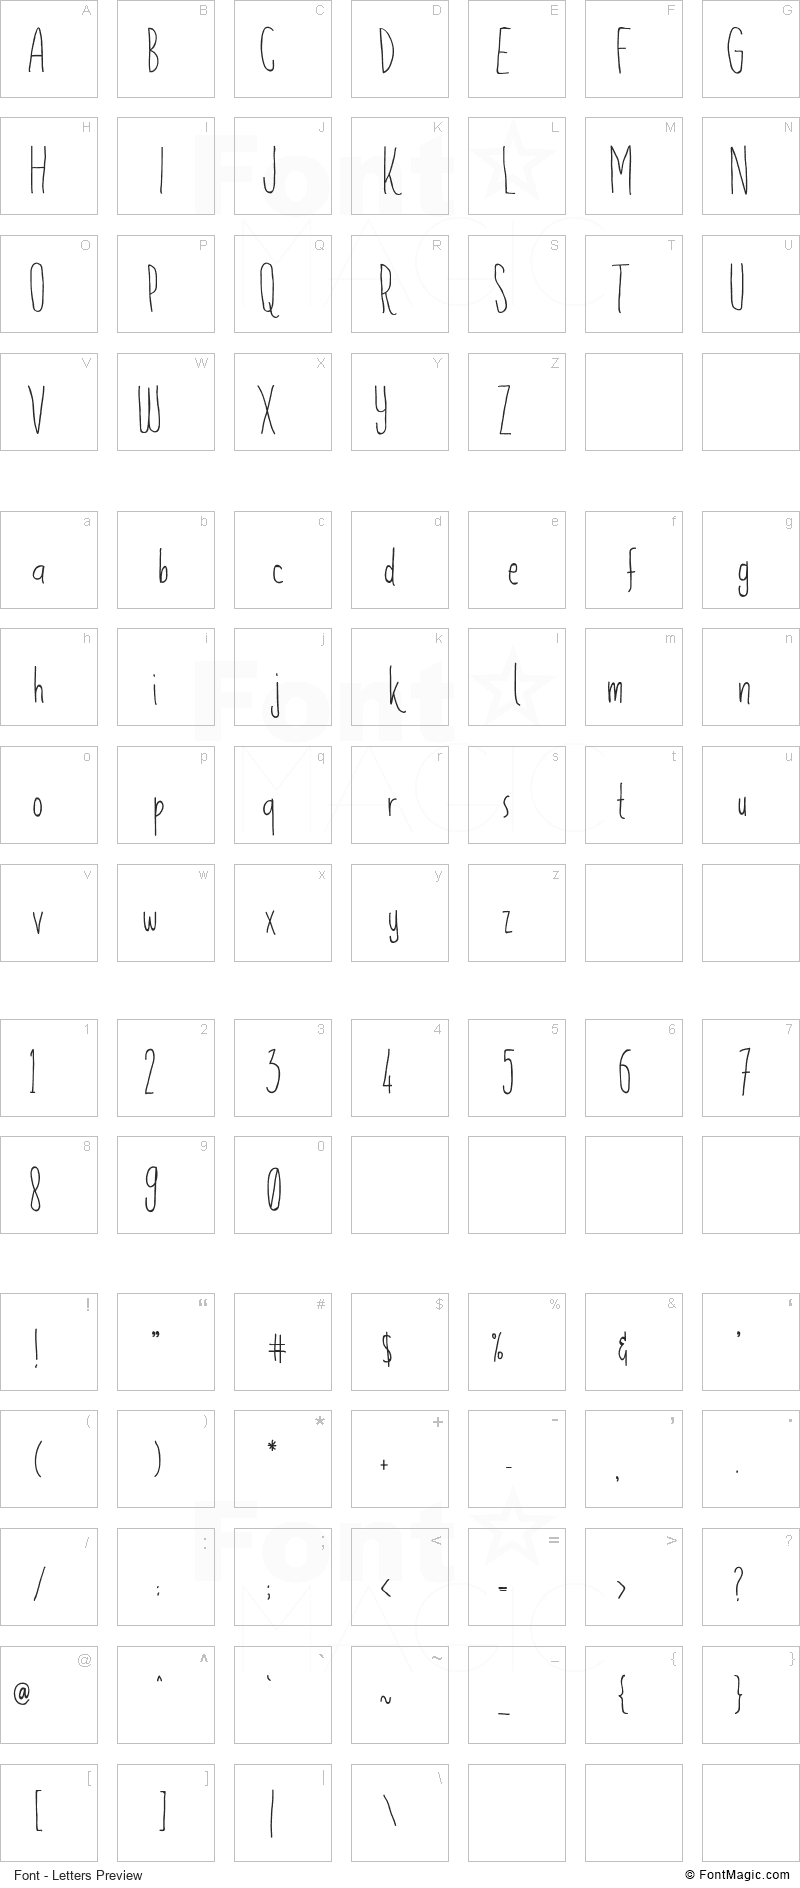 Flowerista Font - All Latters Preview Chart